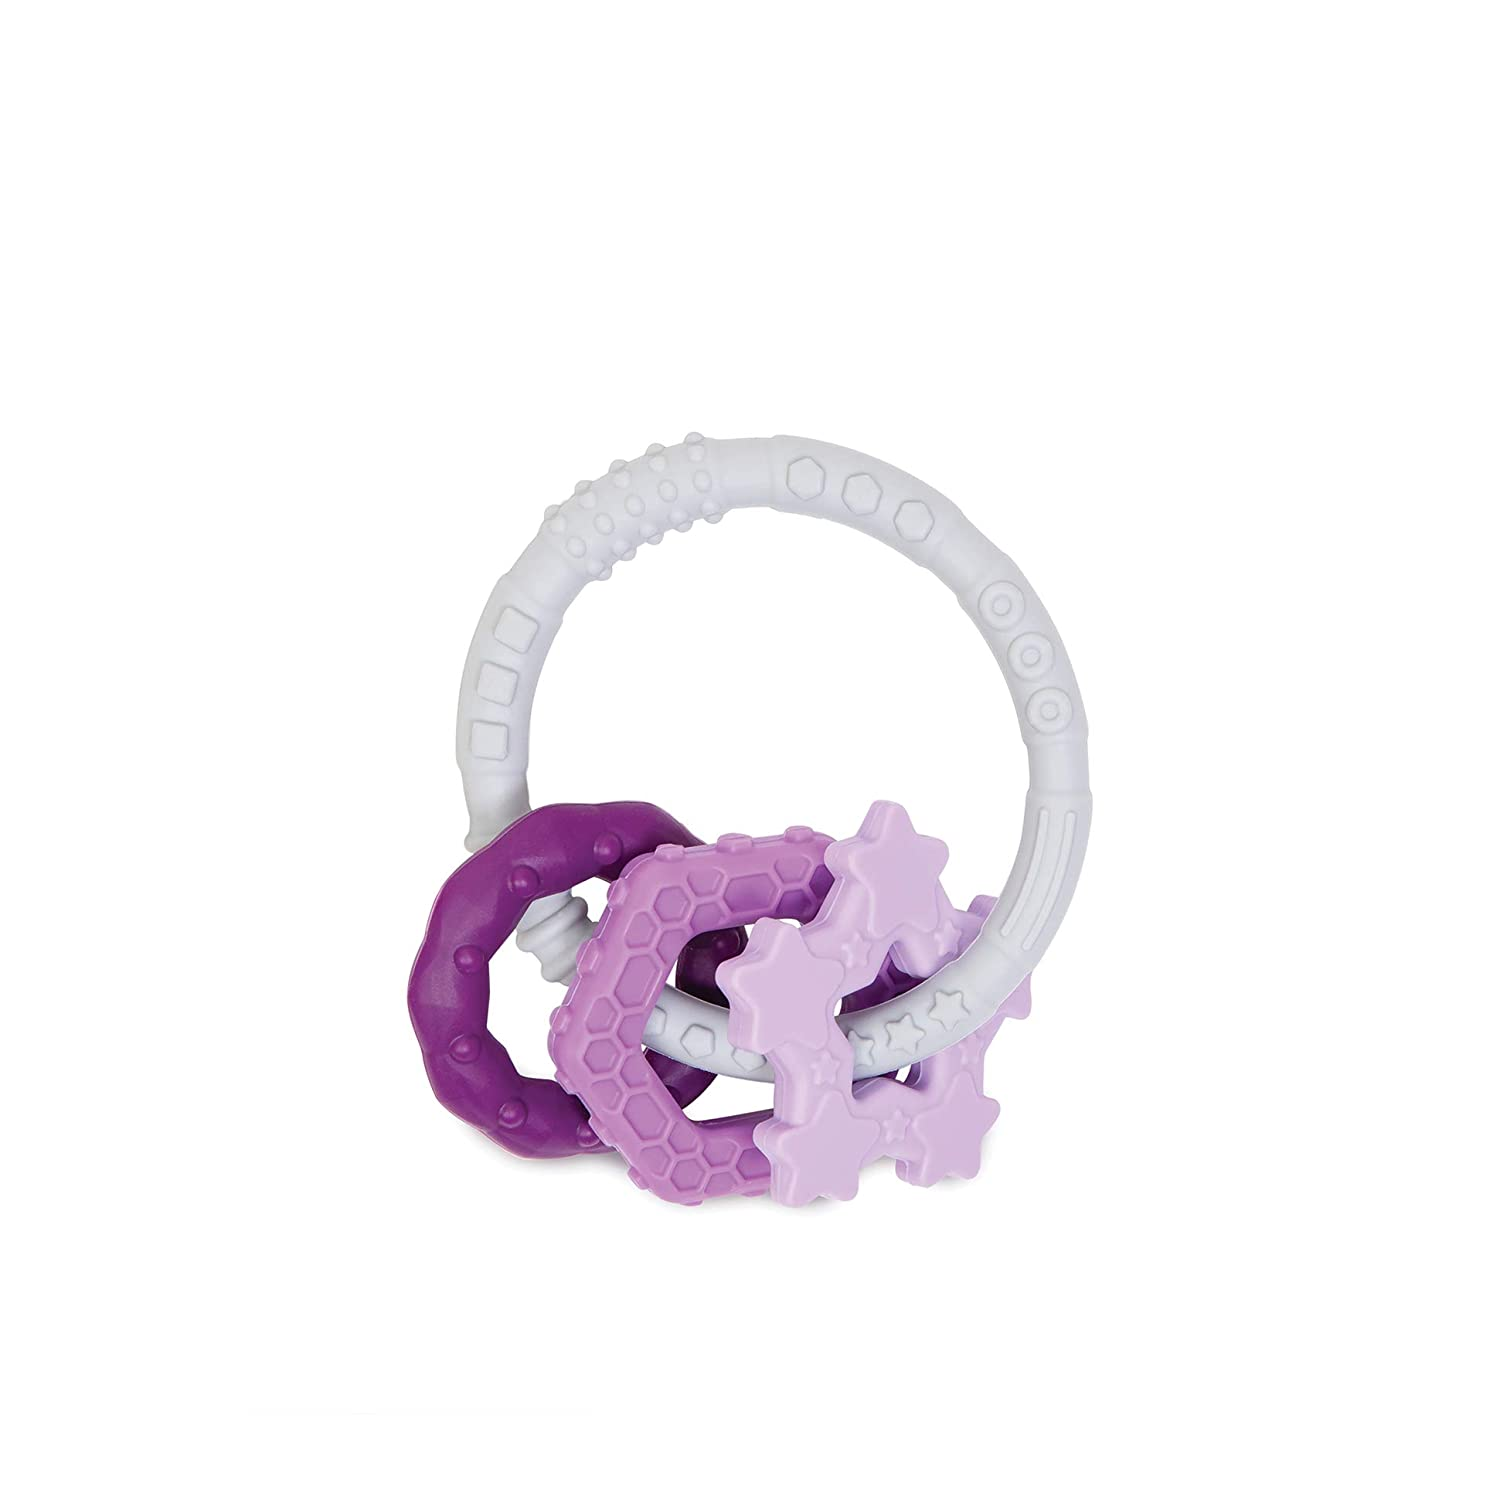 Bumkins Silicone Teething Ring with Charms Babies 3 Months+ Purple Sensory Gum Soothing